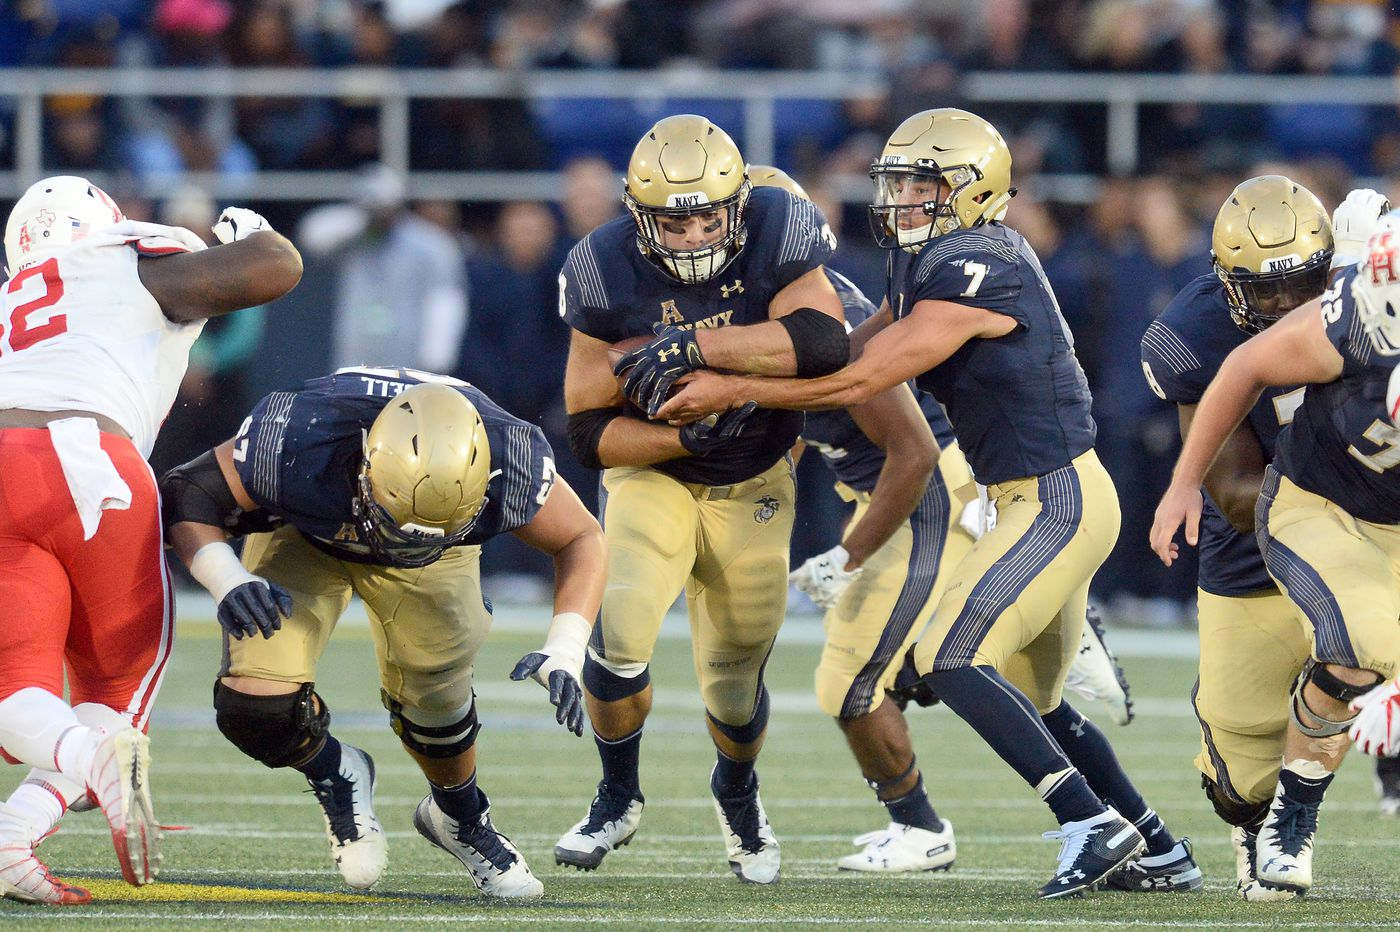 Navy Football Hopes To Erase A Disappointing Season With A Win Over Army